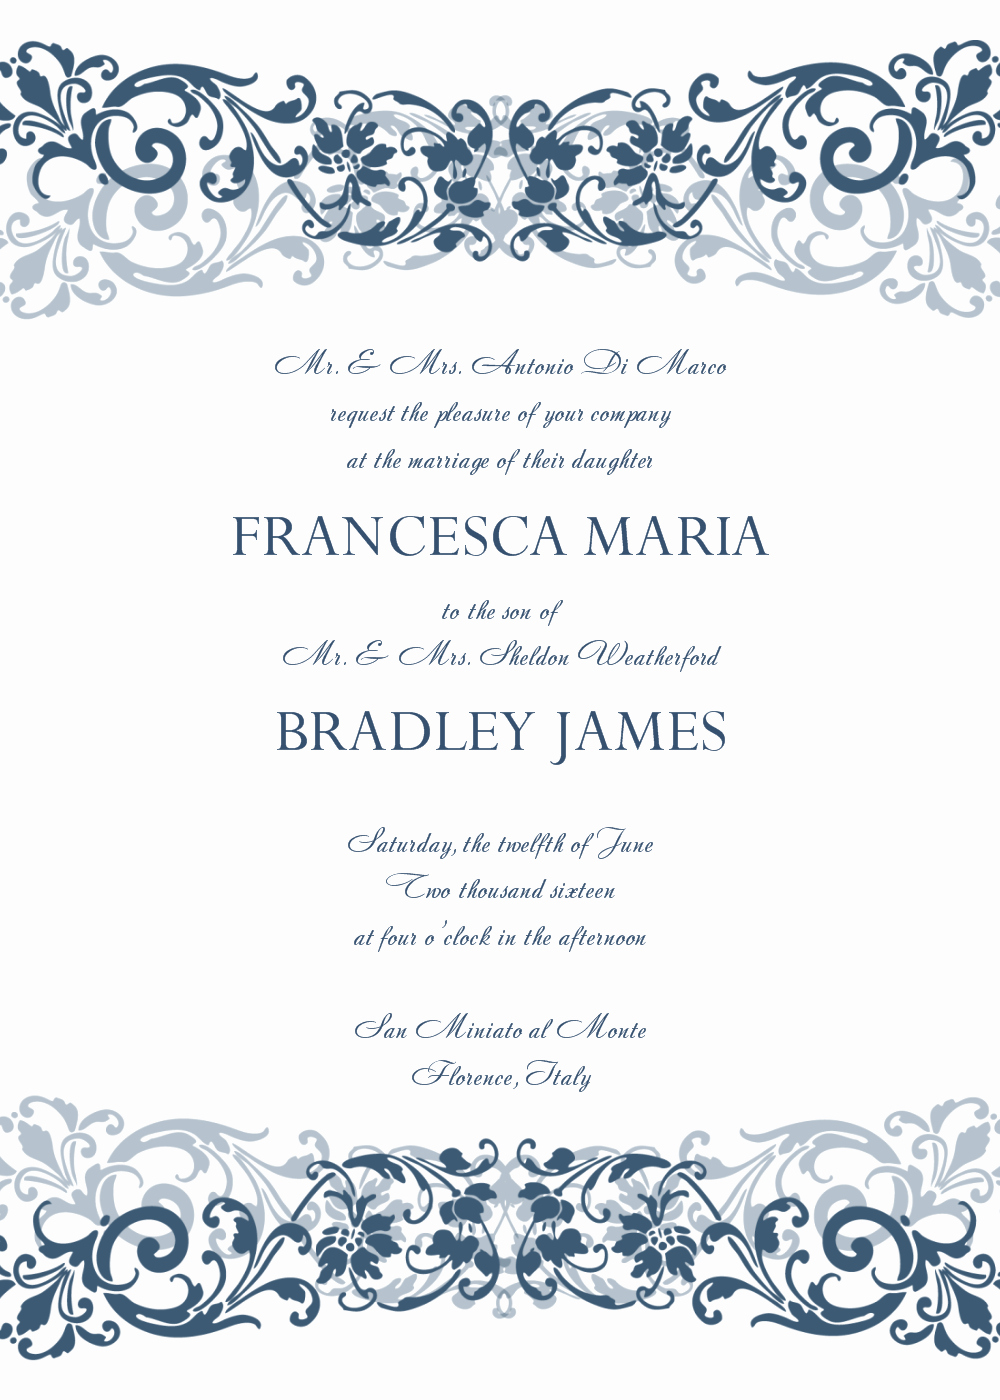 Free Printable Wedding Invitation Templates Lovely 30 Free Wedding Invitations Templates